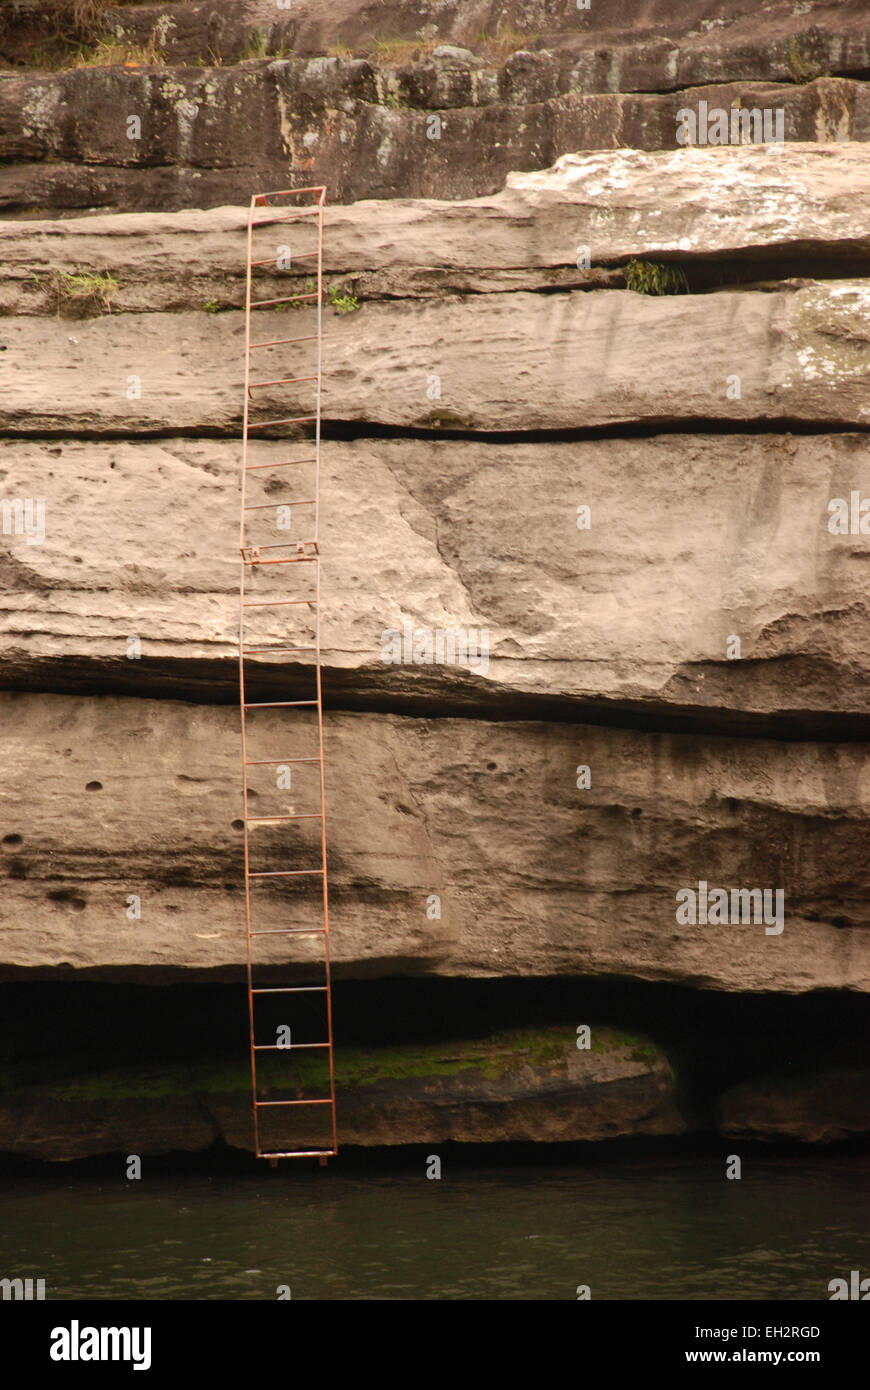 Ladder - Stock Image